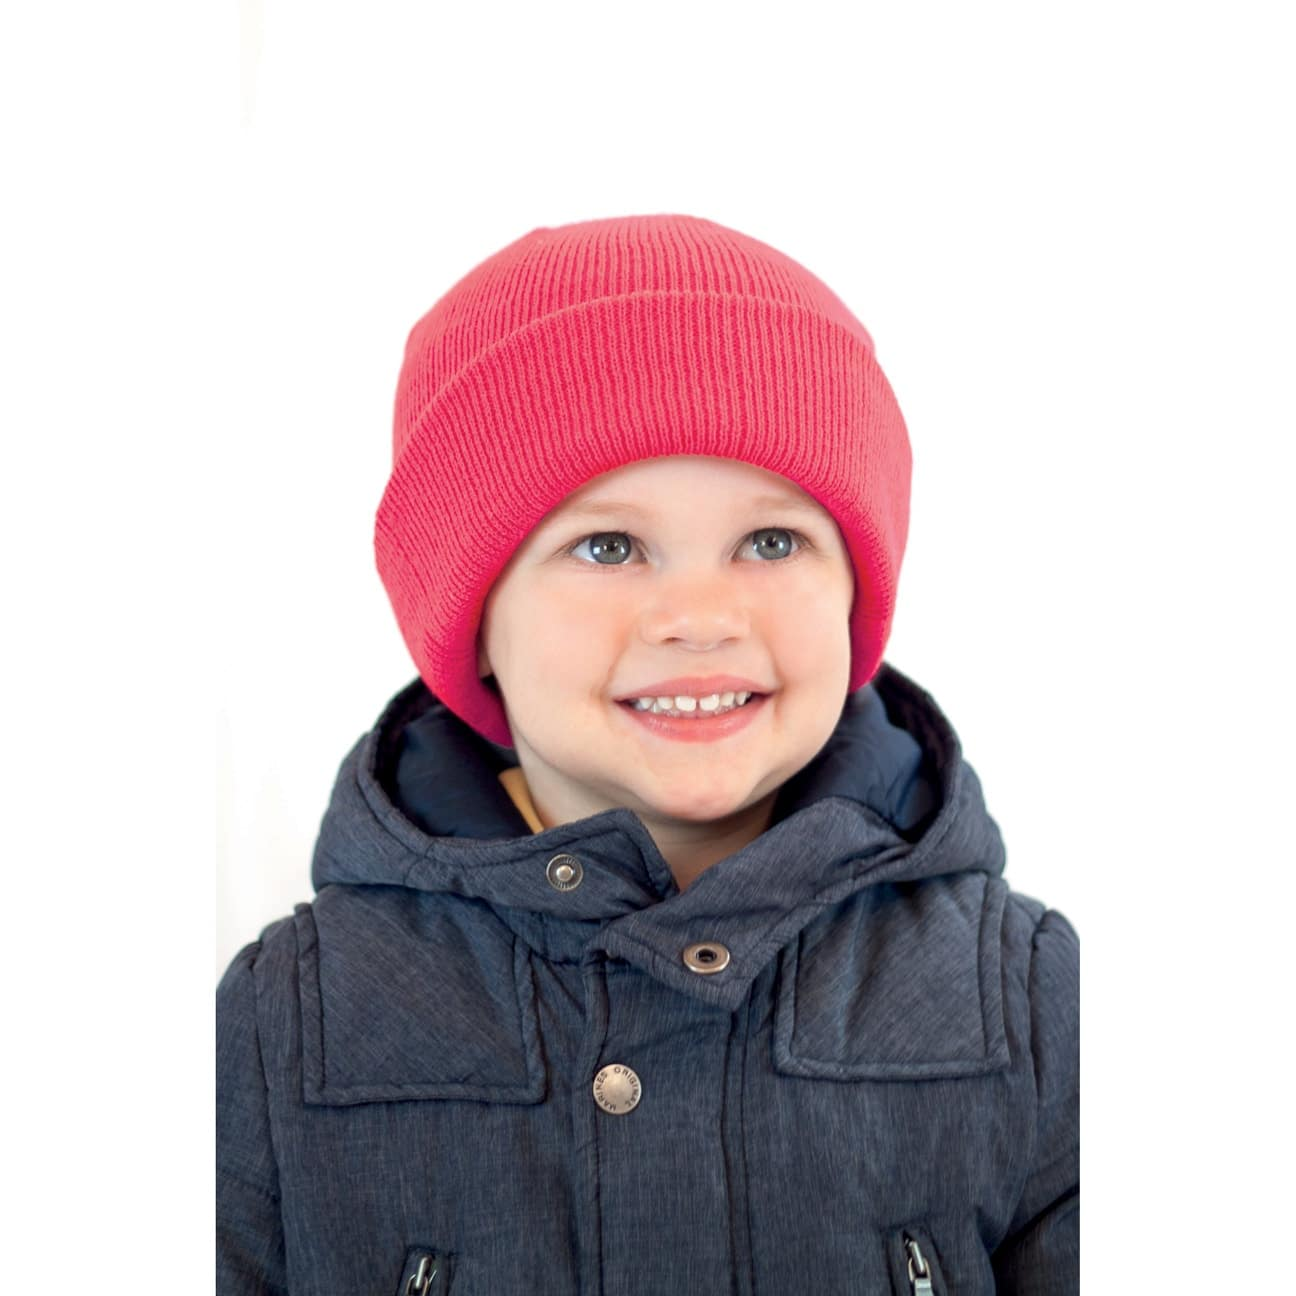 Here's another round of cuteness with this collection of knitted hats for babies, toddlers and older (some patterns even go up to Adult sized if you like). Plenty of styles to choose from ranging from bonnets, toques, ear flaps and pom poms to fun character designs.